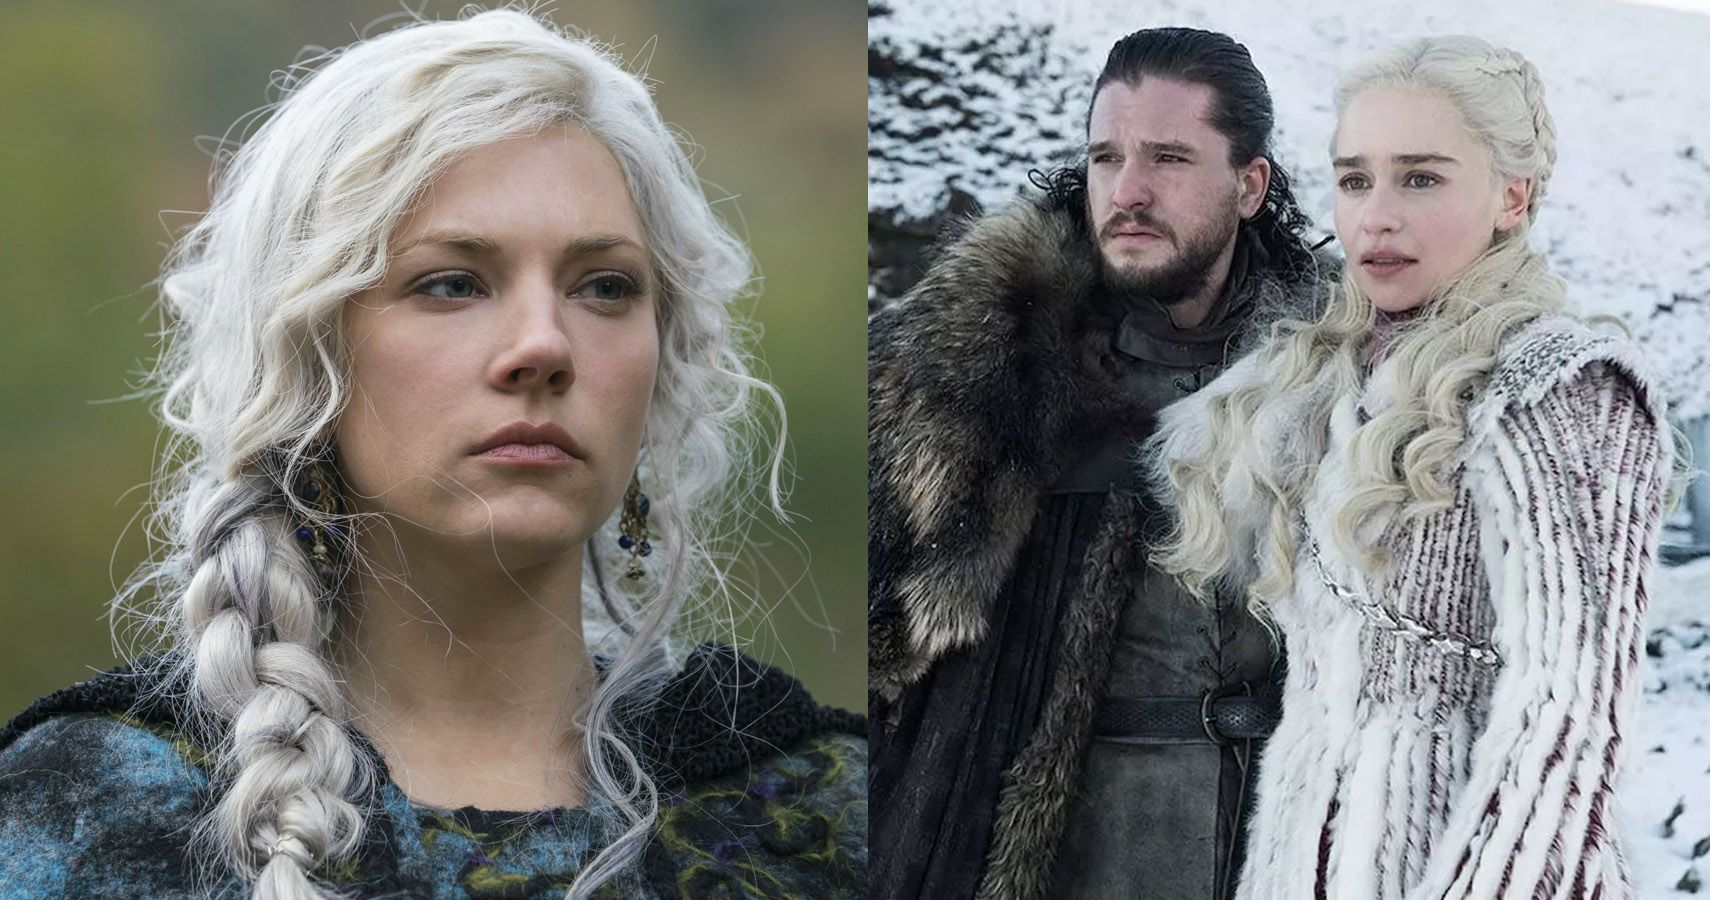 5 Things Game Of Thrones Does Better Than Vikings 5 Vikings Does Better